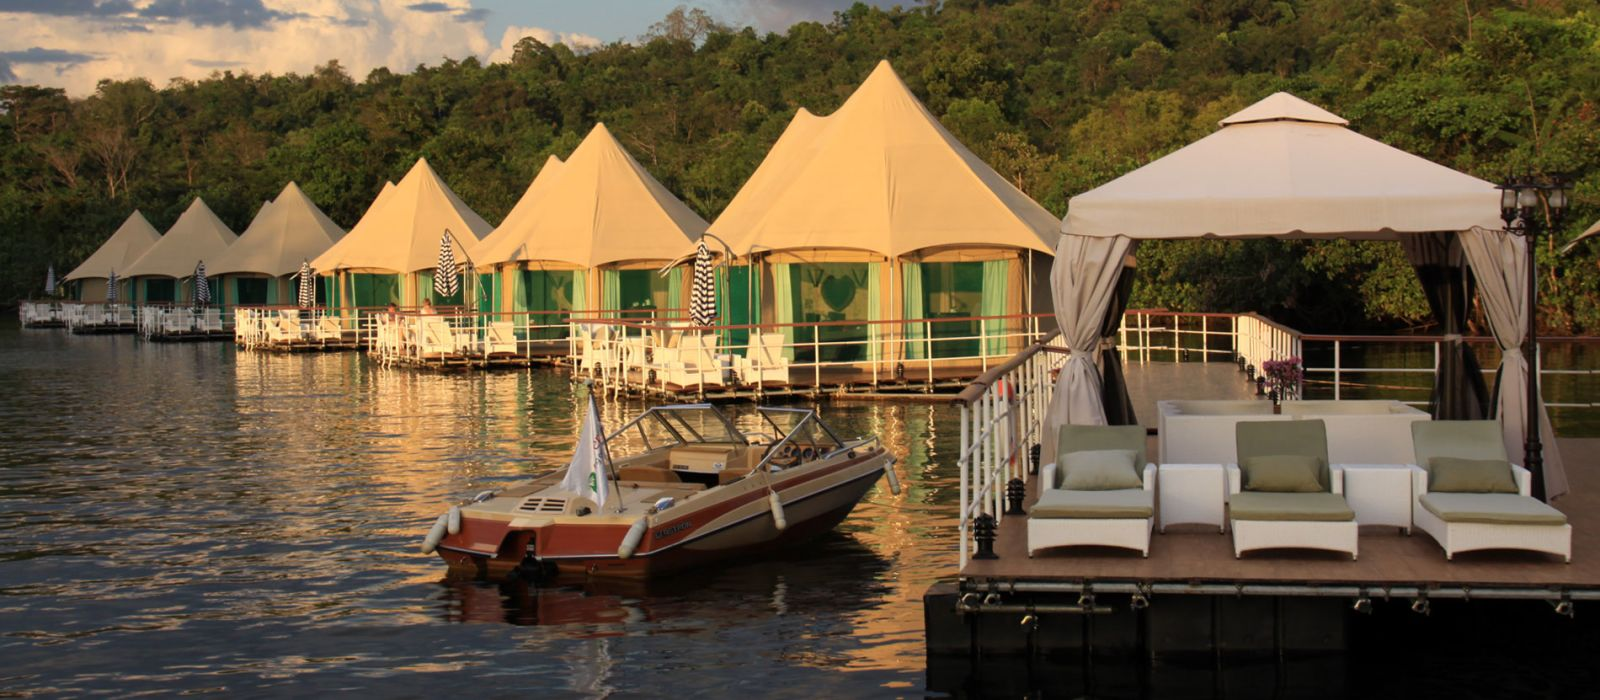 Hotel 4 Rivers Floating Lodge Cambodia